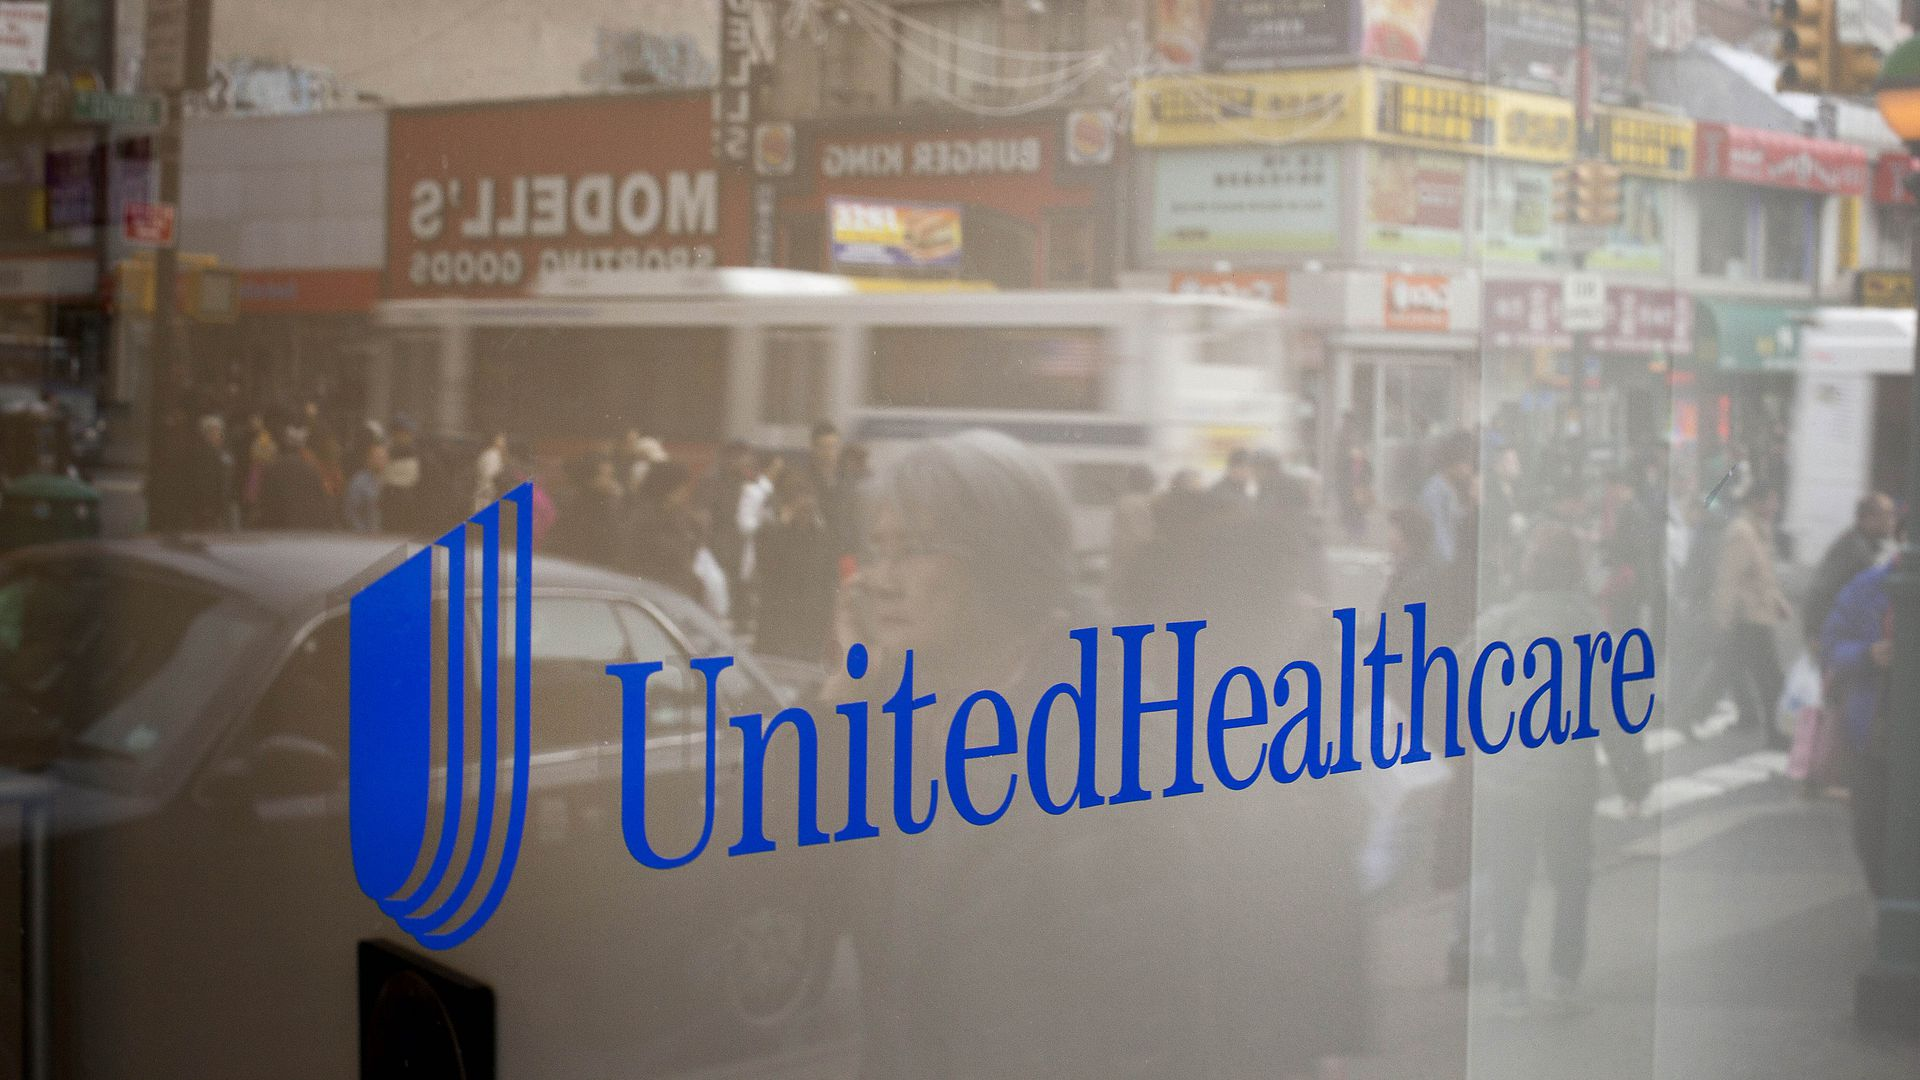 UnitedHealthcare signage outside of a store in New York.